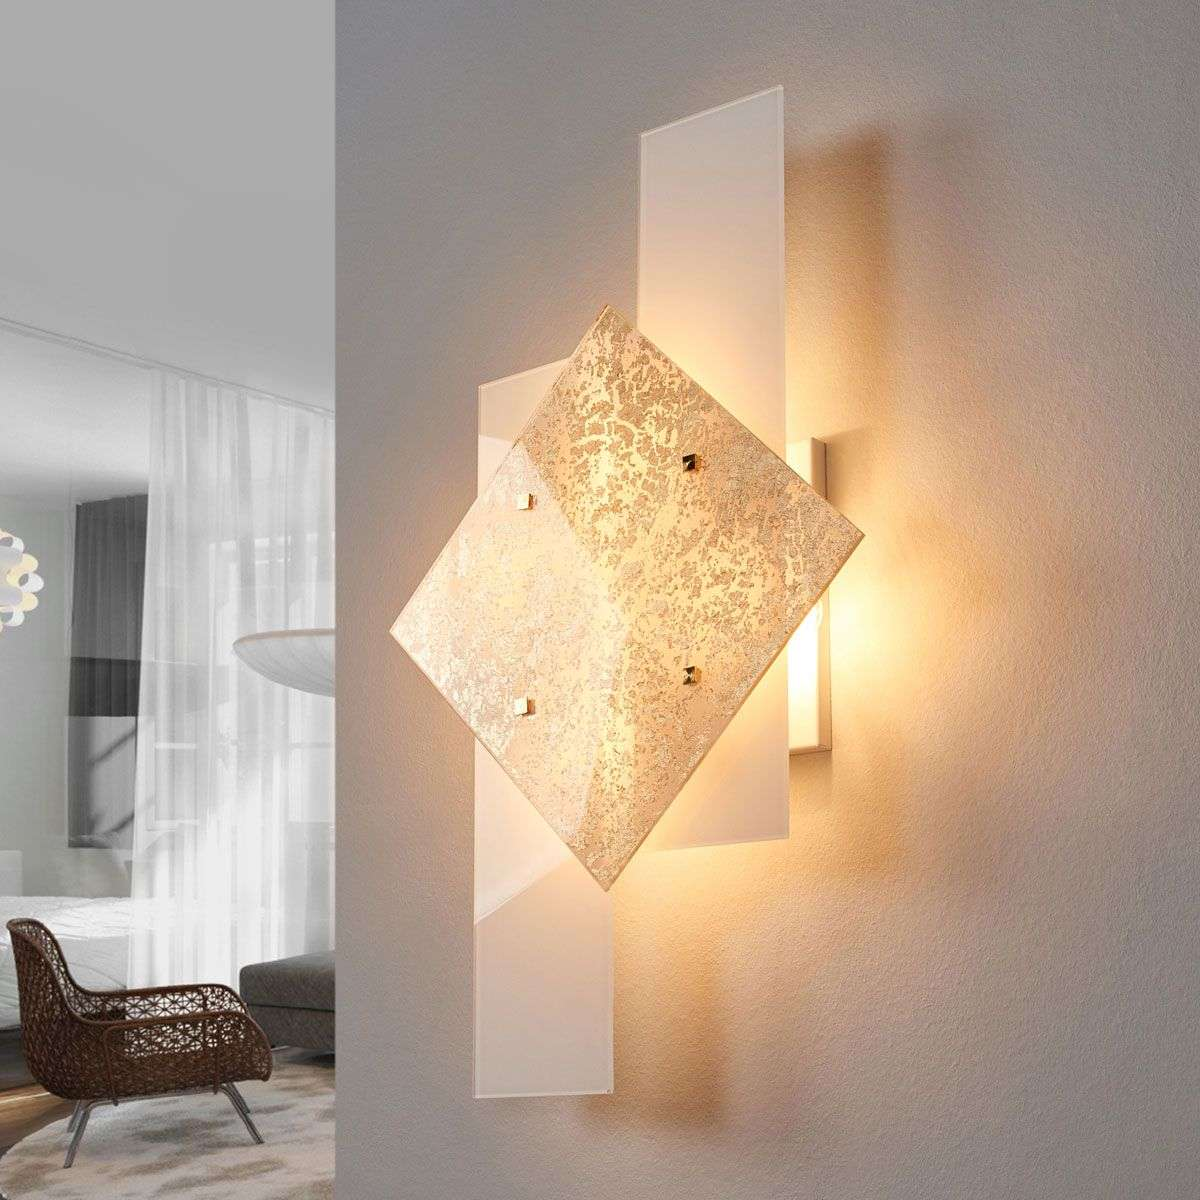 With gold leaf décor - wall light Bandiera 63 cm | Lights.ie